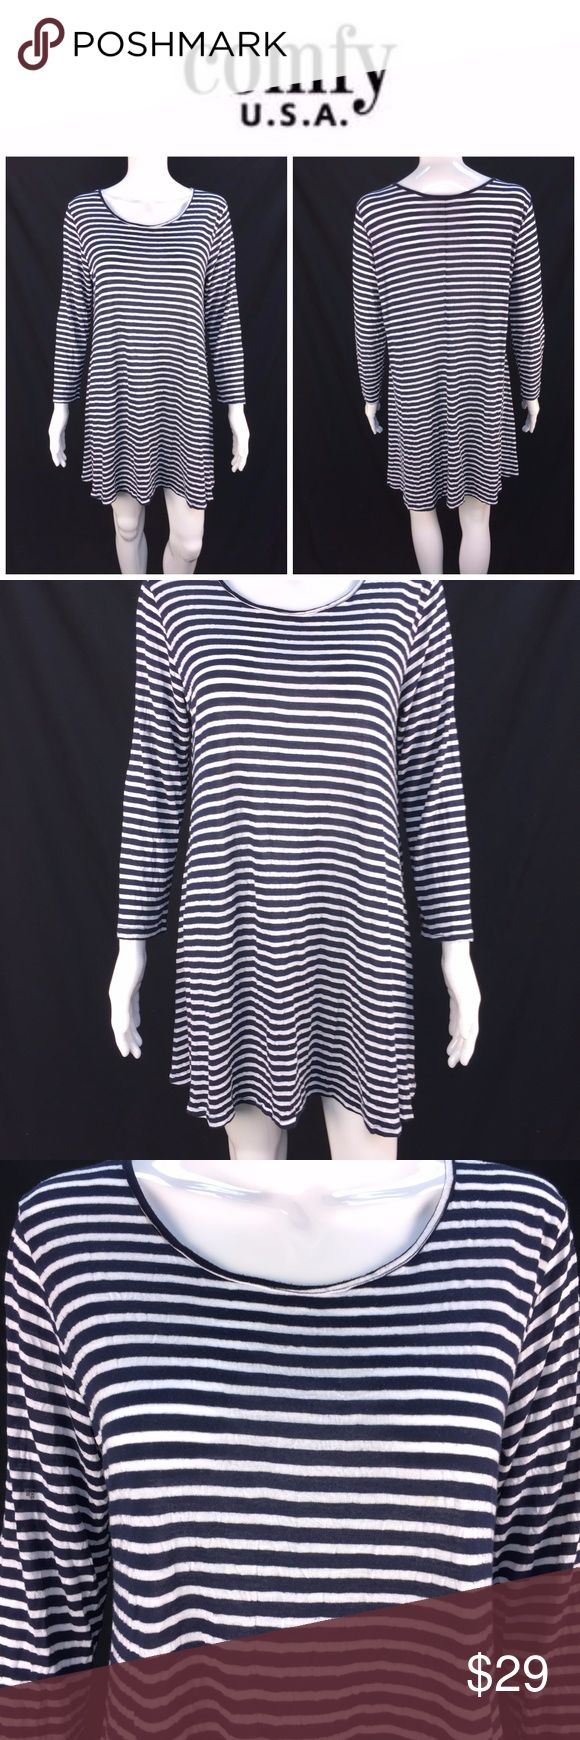 "Comfy USA Sz L Navy & White Striped Tunic Top *  Comfy USA Sz L Navy & White Striped Tunic Top Sharkbite Hem Cozy Lagenlook * Please see below for measurements; all measurements taken with garment lying flat.  Please see all photos for complete condition assessment. Shoulder to Shoulder: 17"" Armpit to Armpit (Bust): 22"" Waist: NA"" Overall Length: 28/32"" Sleeve: 24"" Item Number: 3056 K Comfy USA Tops Tunics"